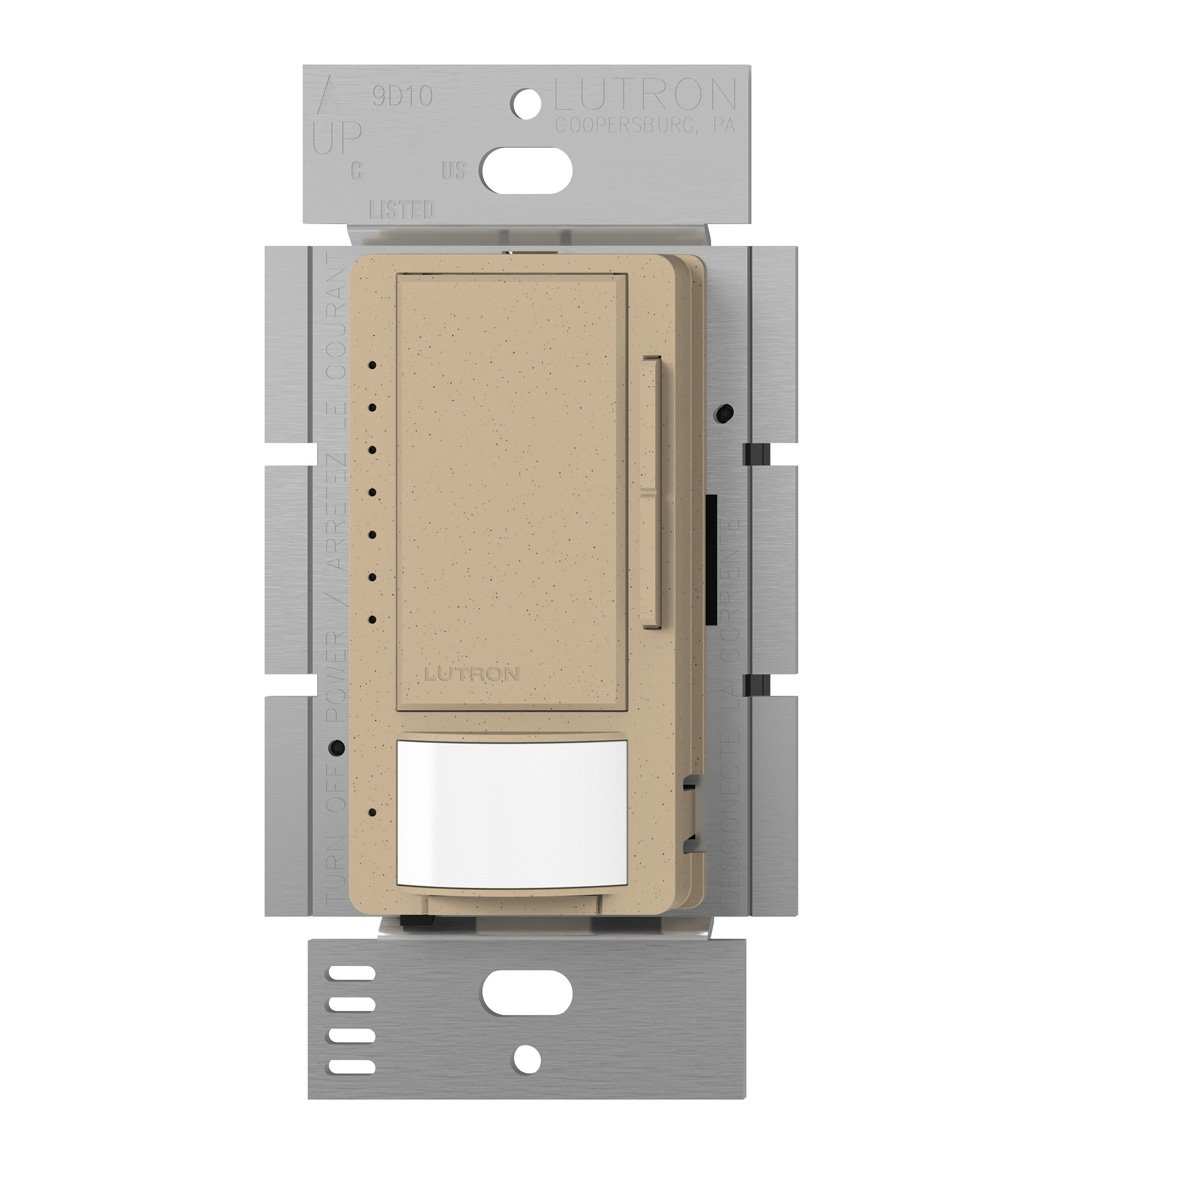 Lutron MSCL-VP153M-DS Maestro CL Single Pole Multi Location Vacancy Sensing Dimmer, Desert Stone by Lutron B00FQL1Y9O  Desert Stone